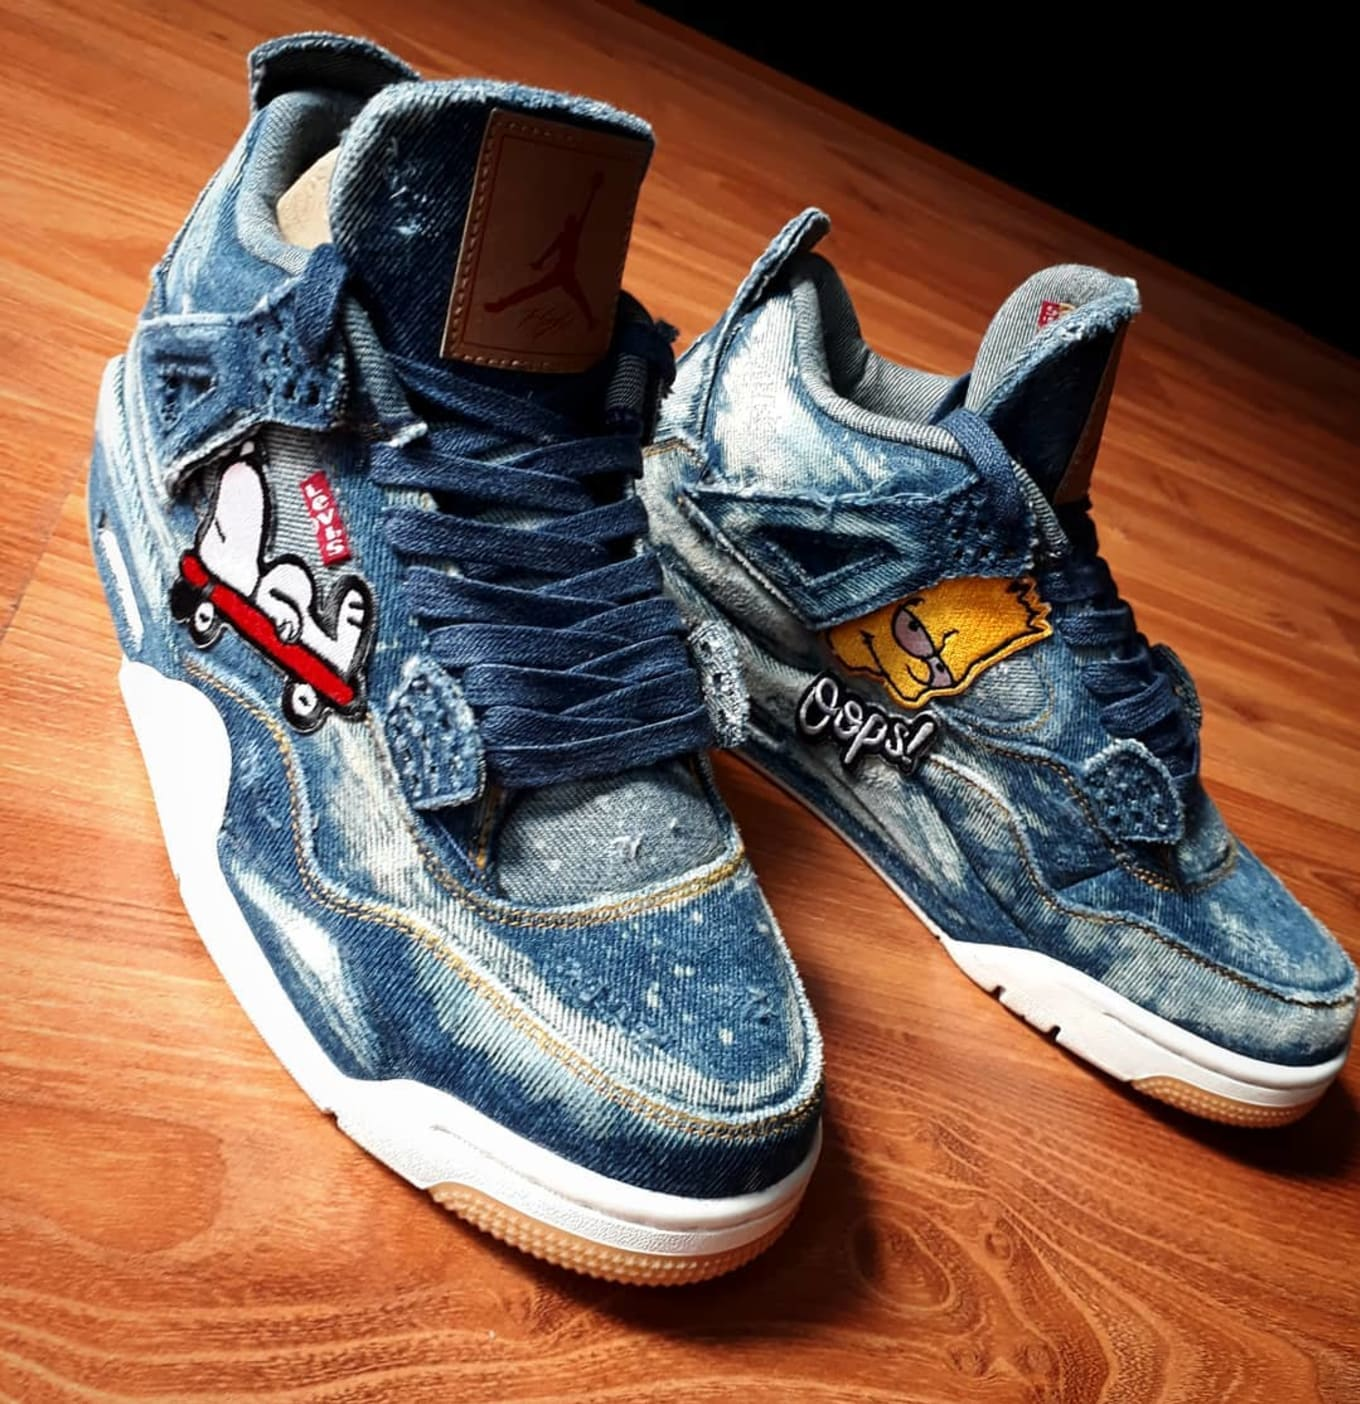 meet 4d253 ae62f Custom Levi's x Air Jordan 4 | Sole Collector